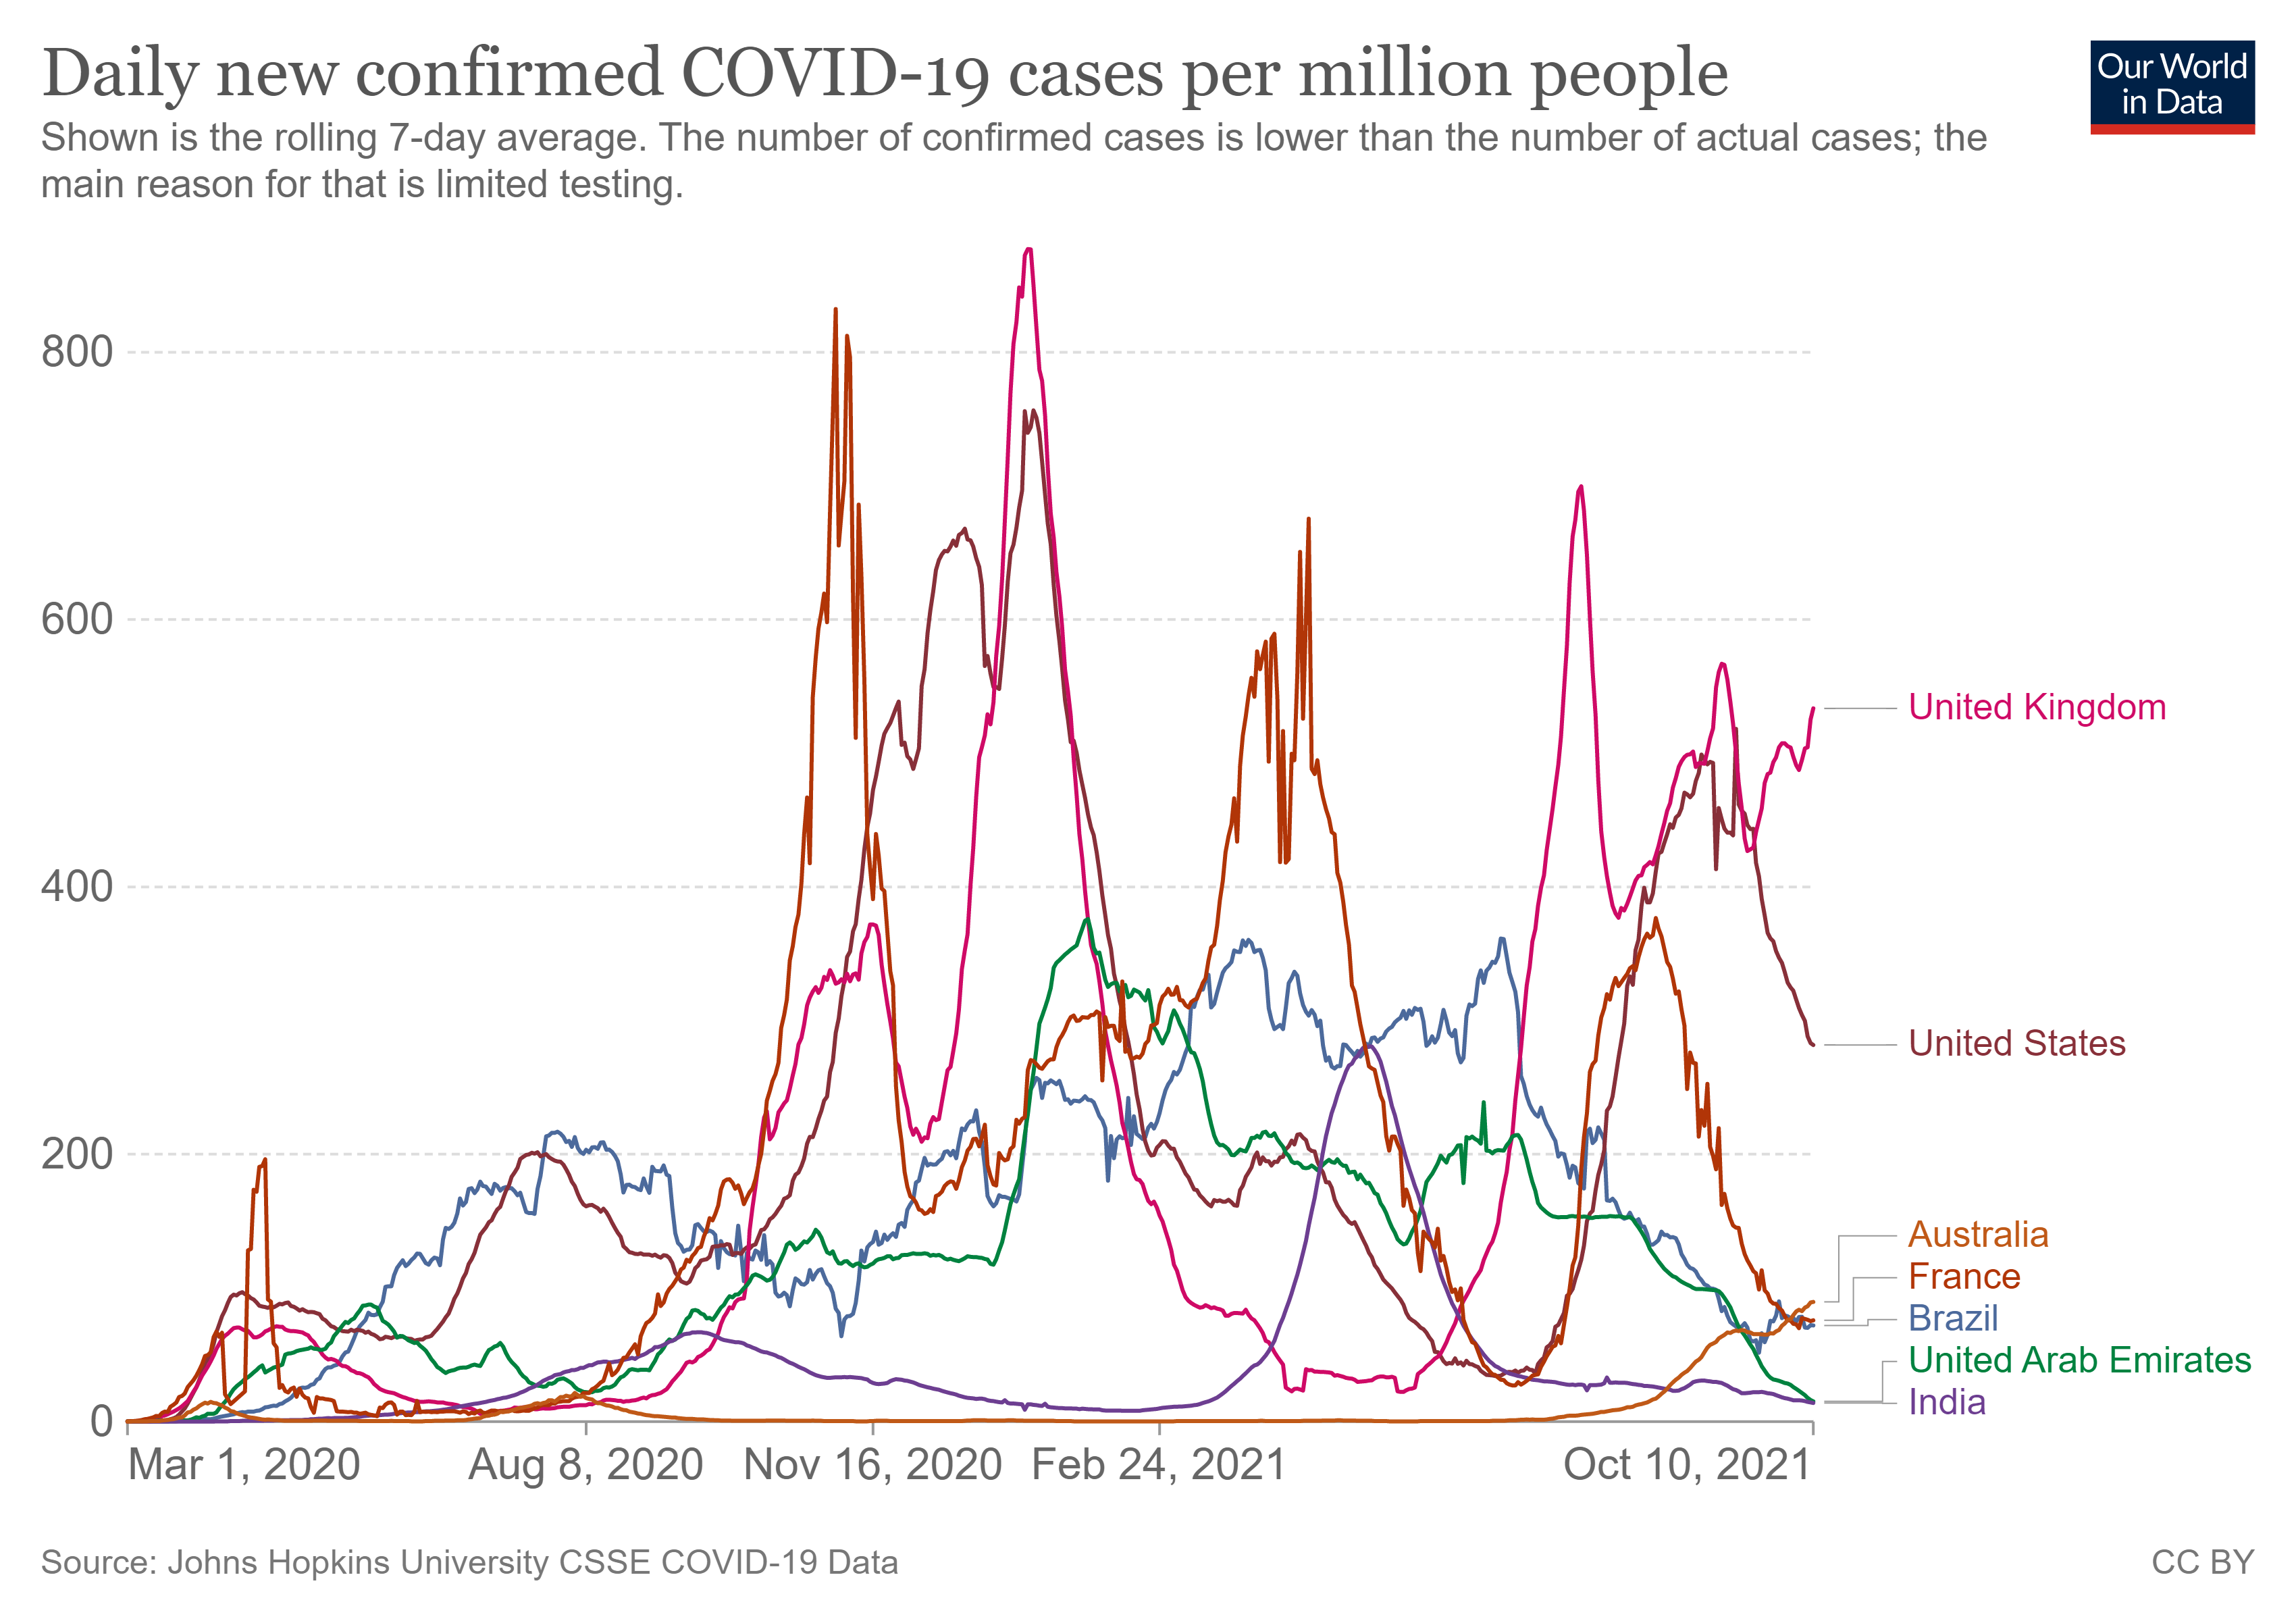 Daily new confirmed COVID-19 cases per million people.